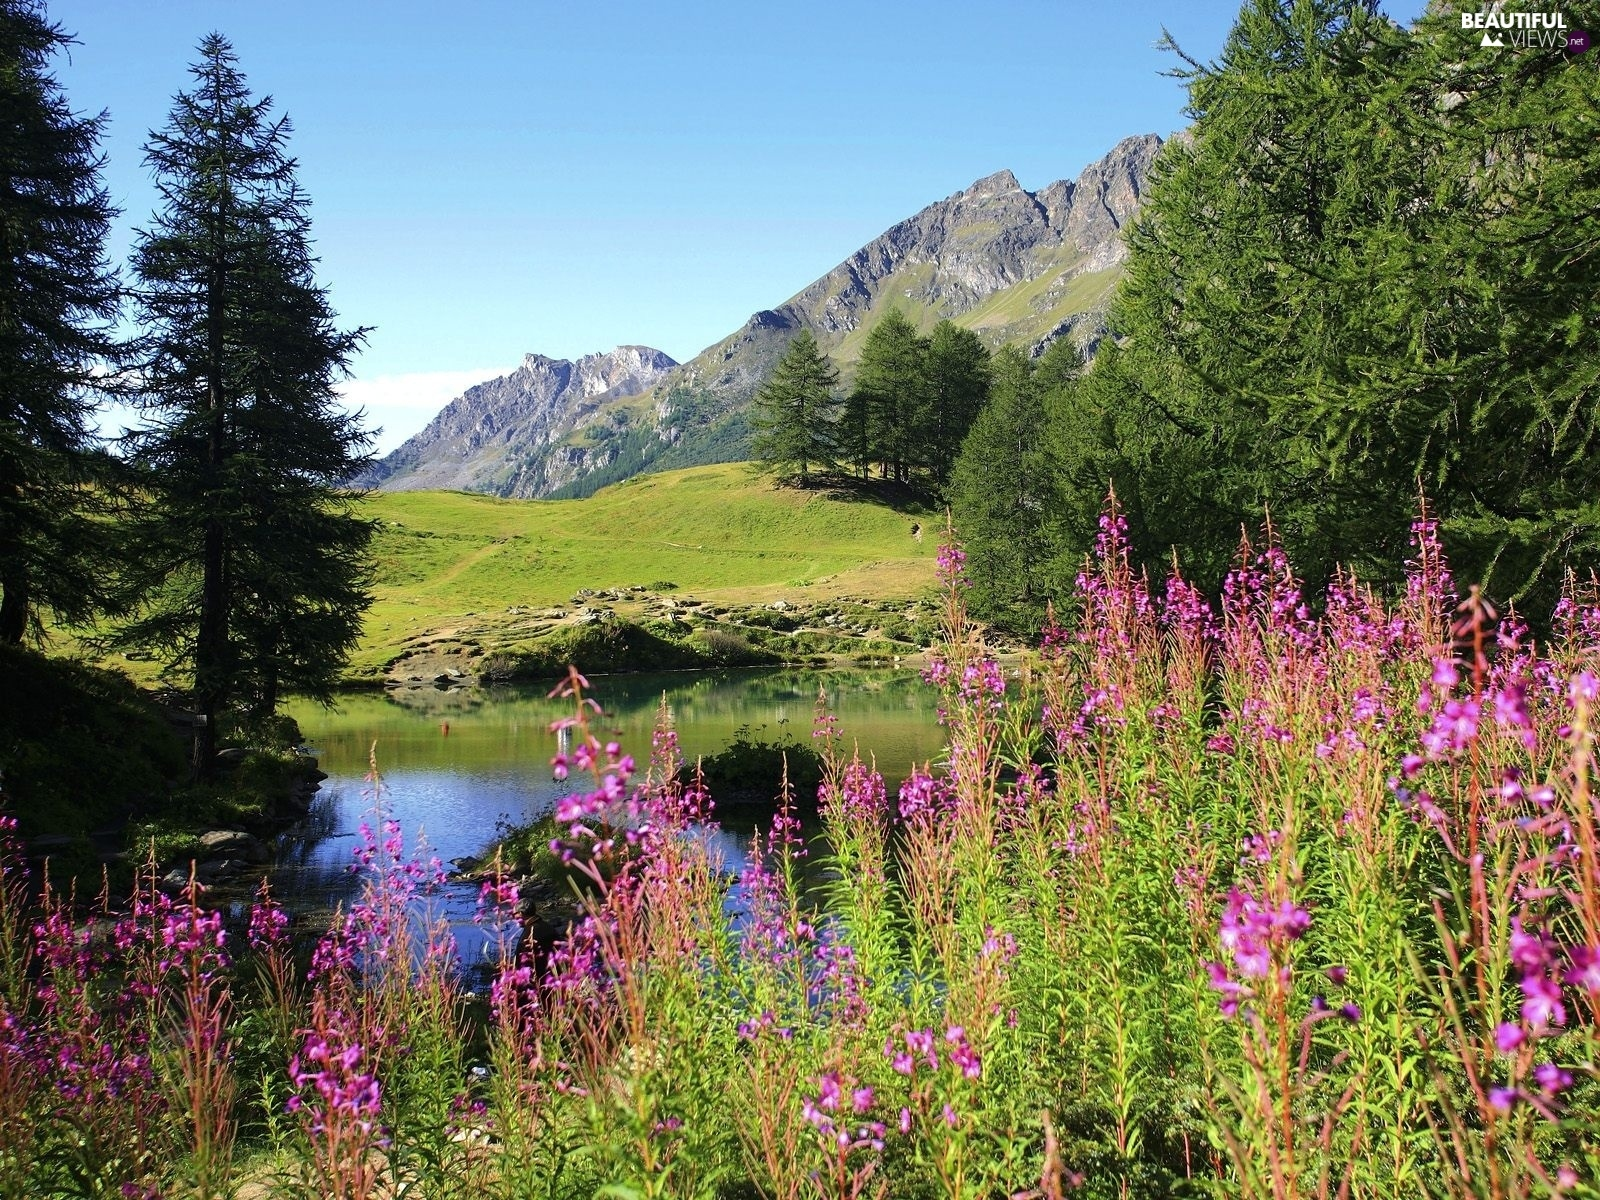 purple, Flowers, Mountains, River, Spring